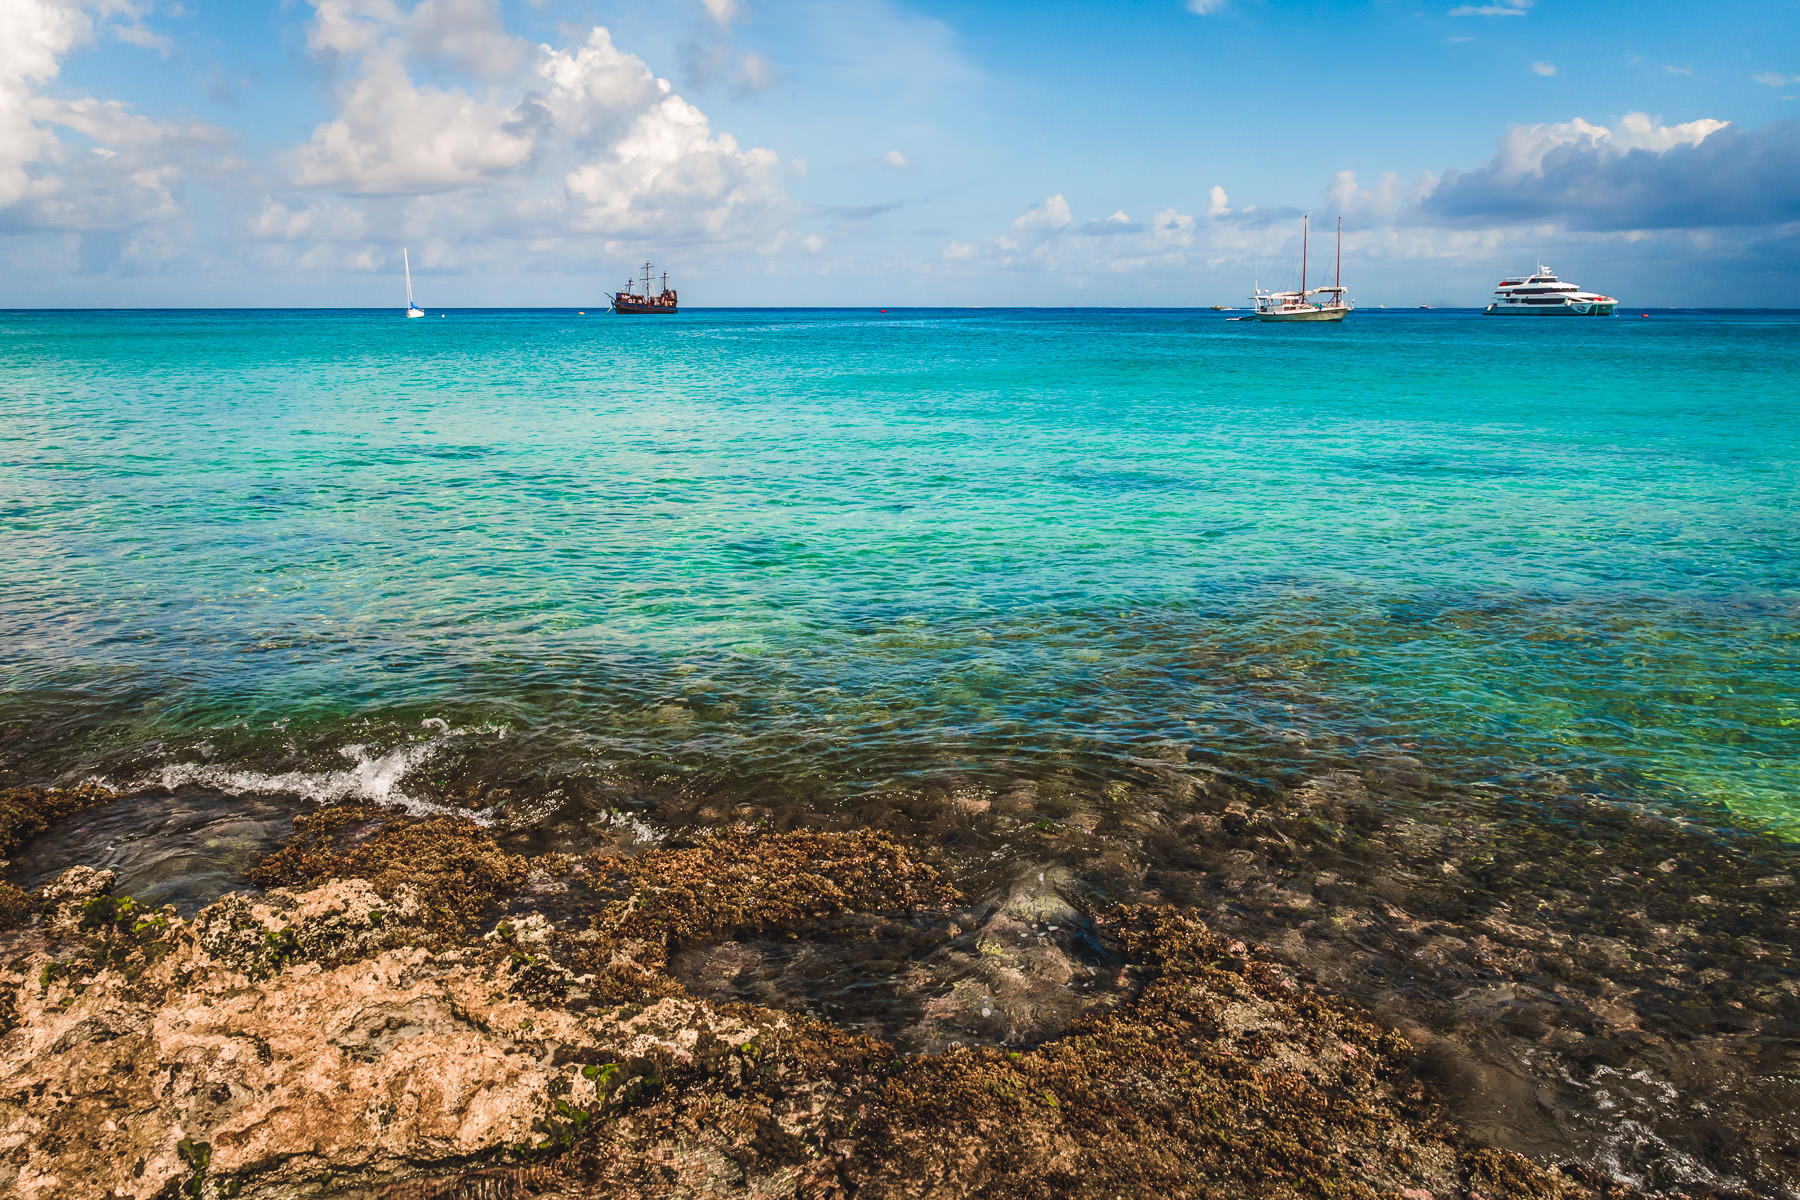 Boats float just off the rocky beach of Cozumel, Mexico.